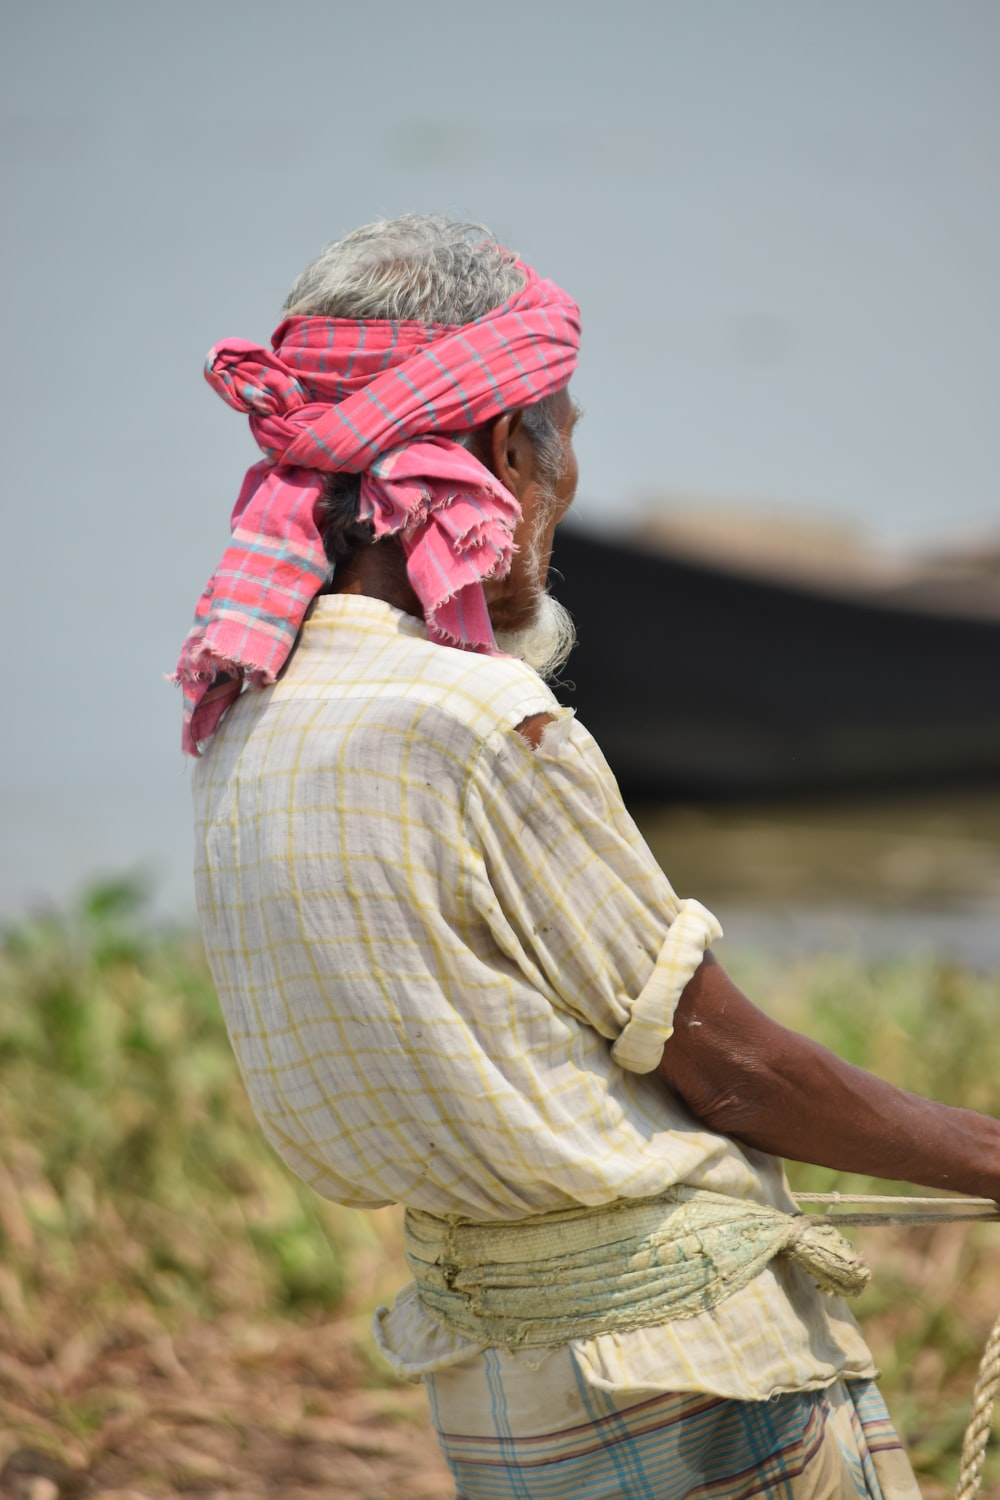 man in pink headscarf